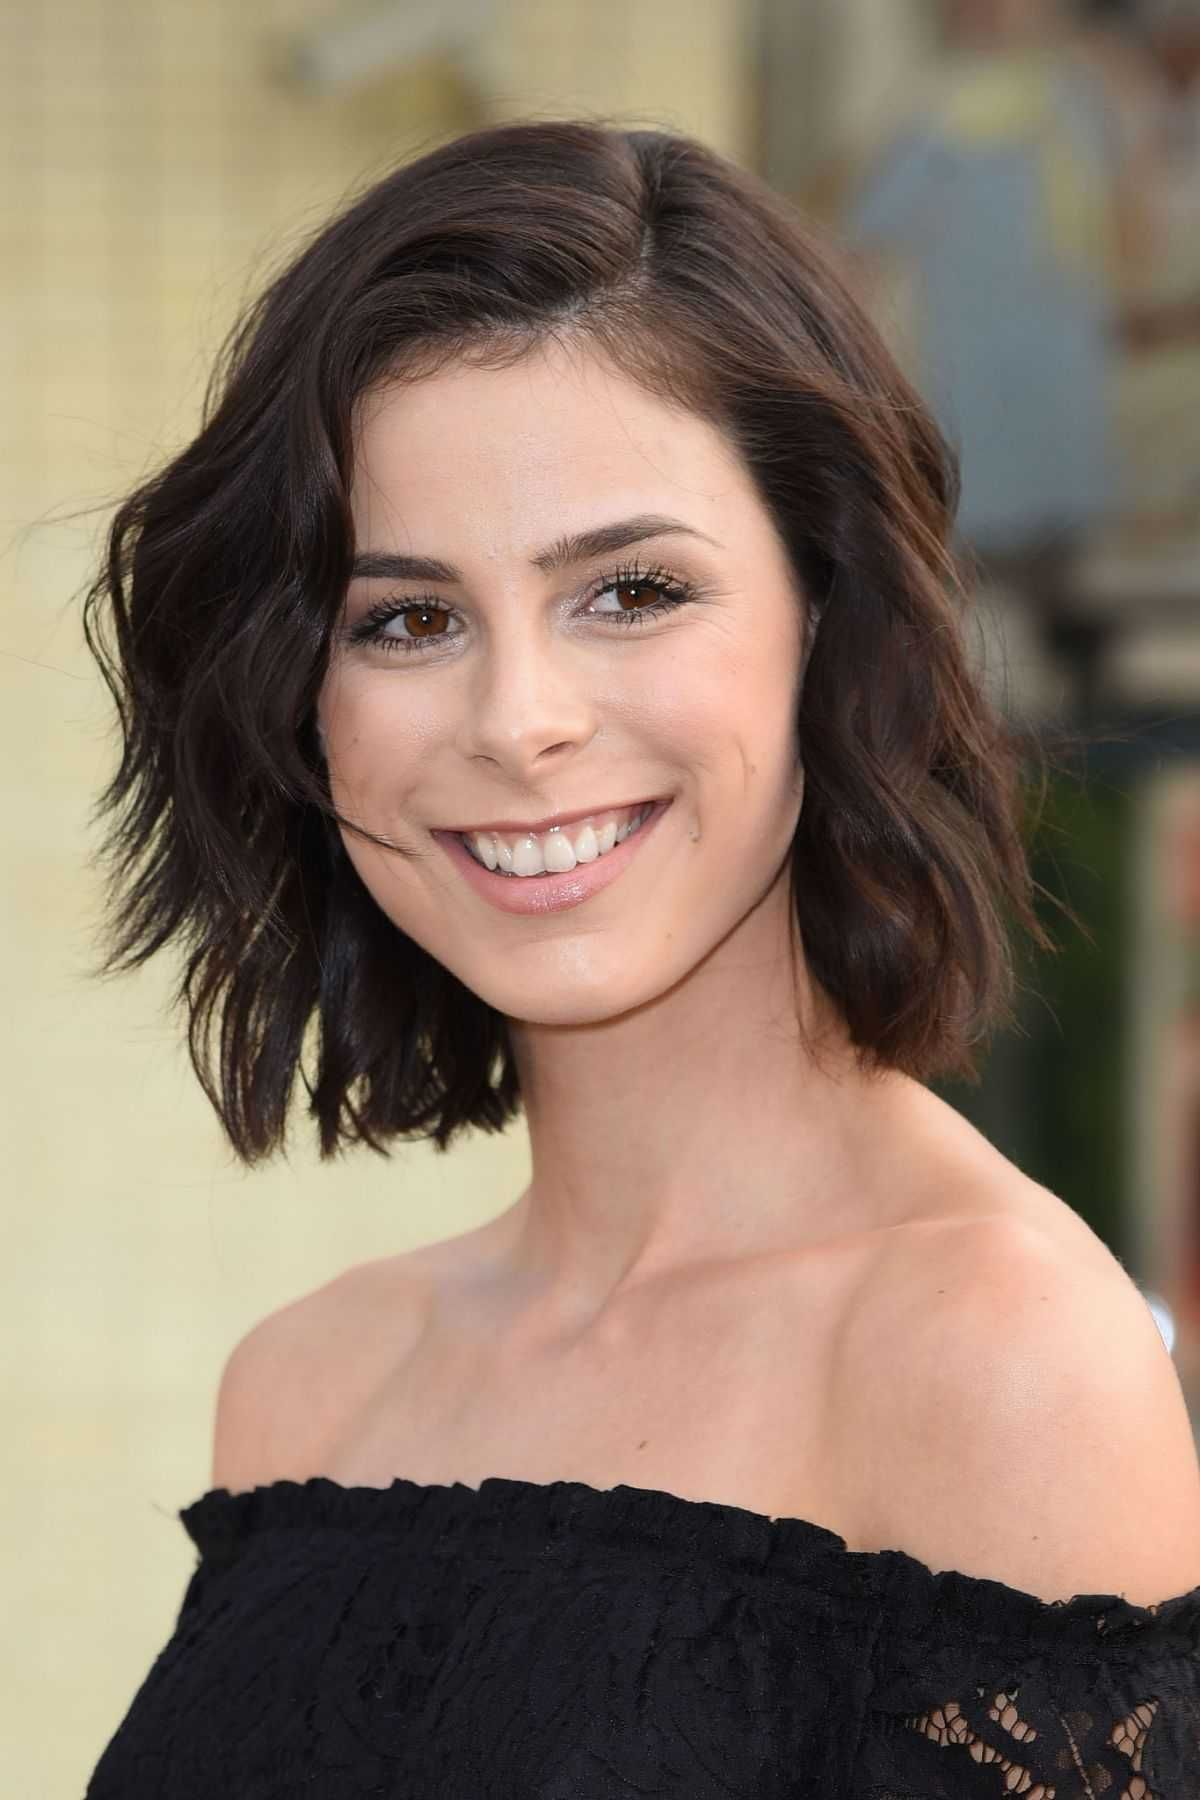 Lena Meyer-landrut At 12 Years Of Dkms In Berlin - May 12, 12